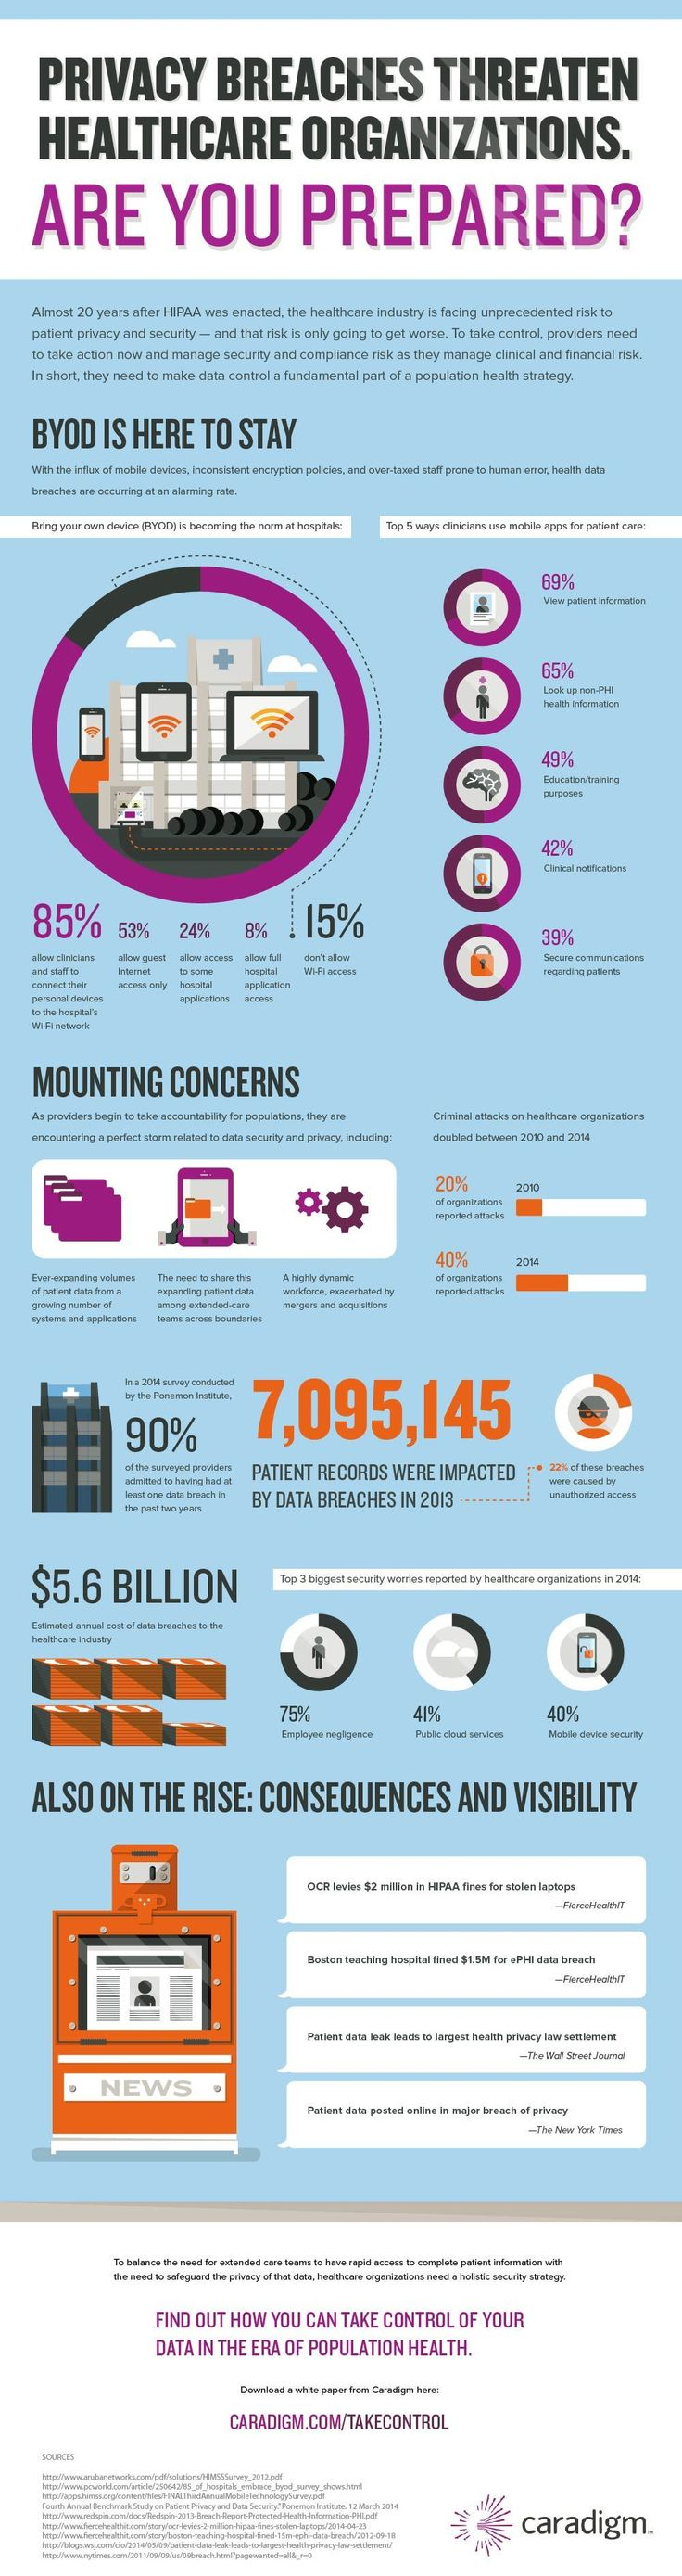 Caradigm infographic illustrates how providers must make data security a fundamental part of their population health management strategy.